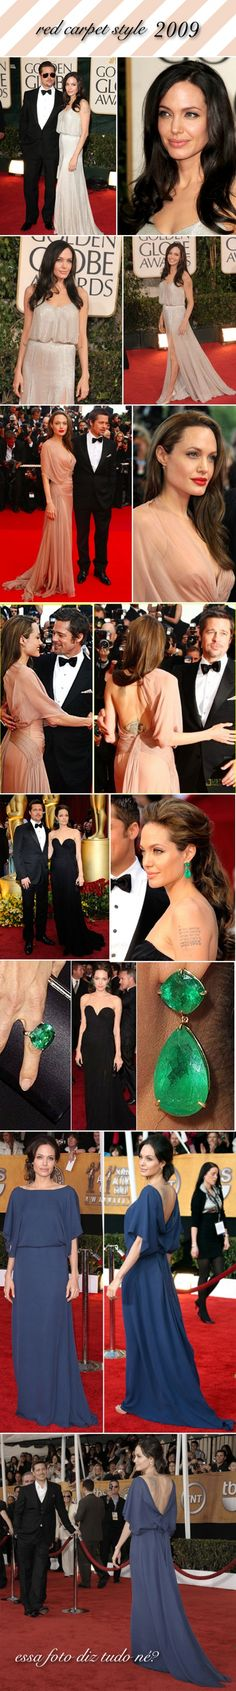 Angelina Jolie red carpet style - 2009